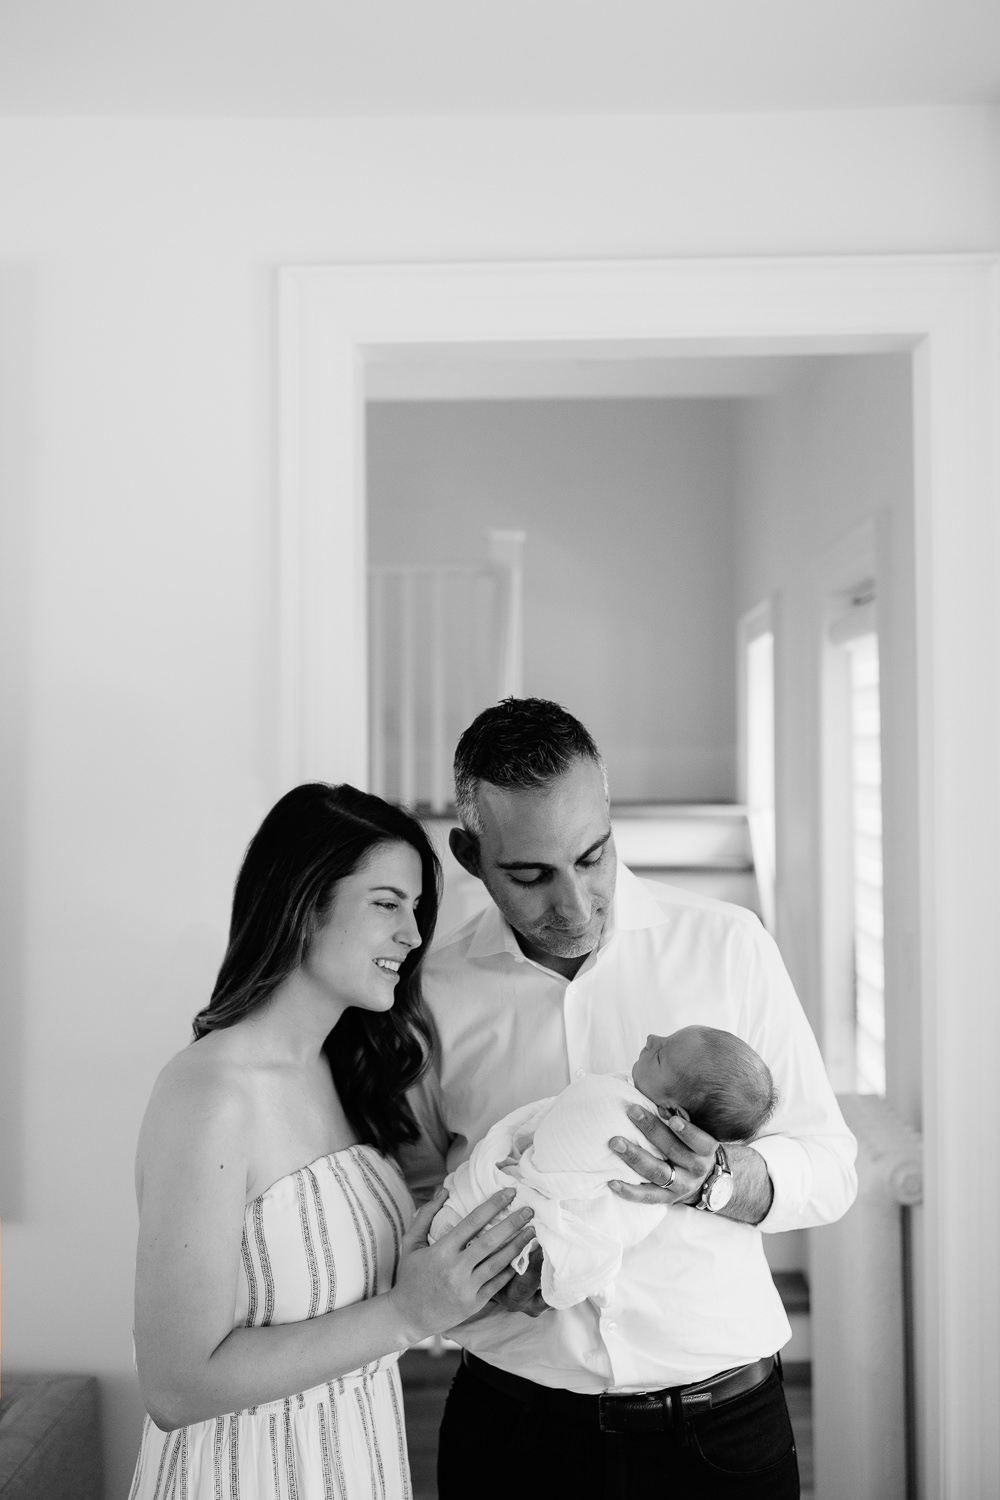 new parents standing in living room, father holding sleeping, swaddled 2 week old baby boy in his arms, mother standing next to husband,smiling down at son -Newmarket In-Home Photography